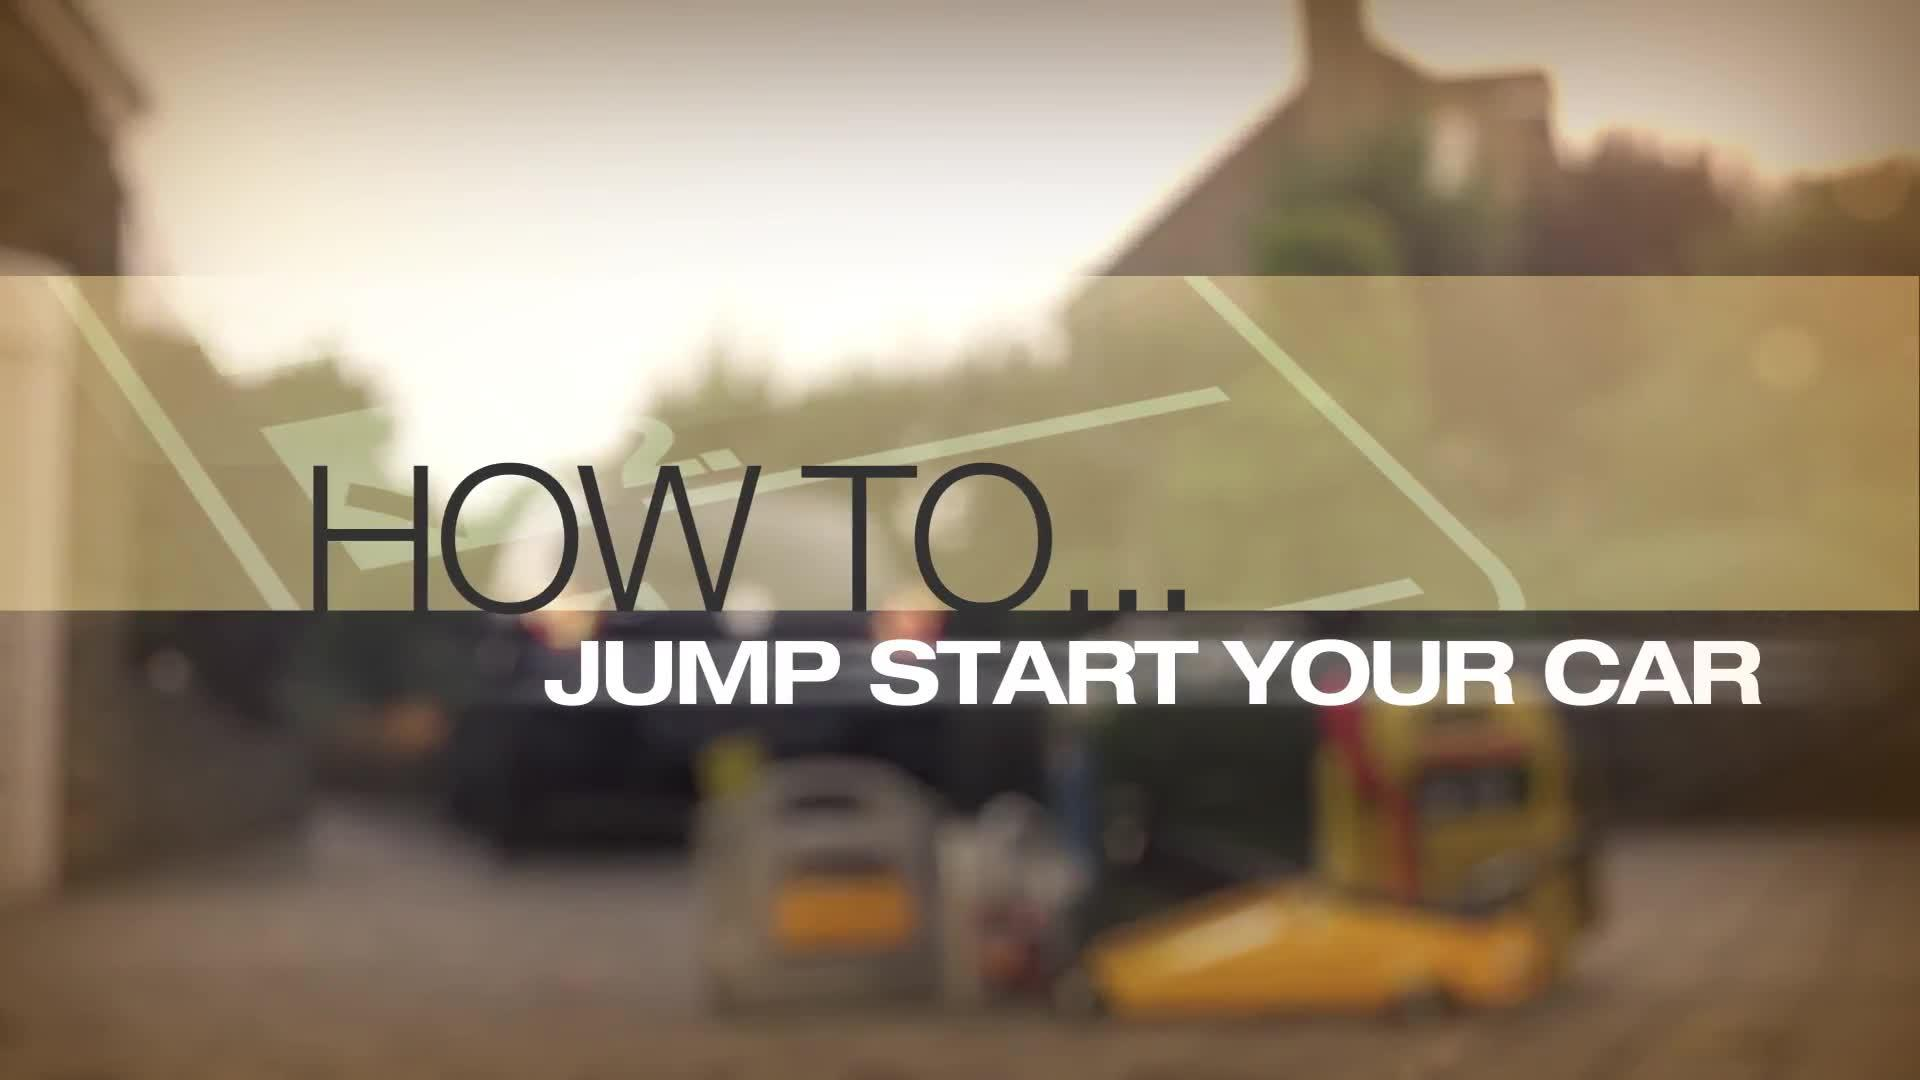 Help Amp Advice How To Jump Start A Car Guide Video